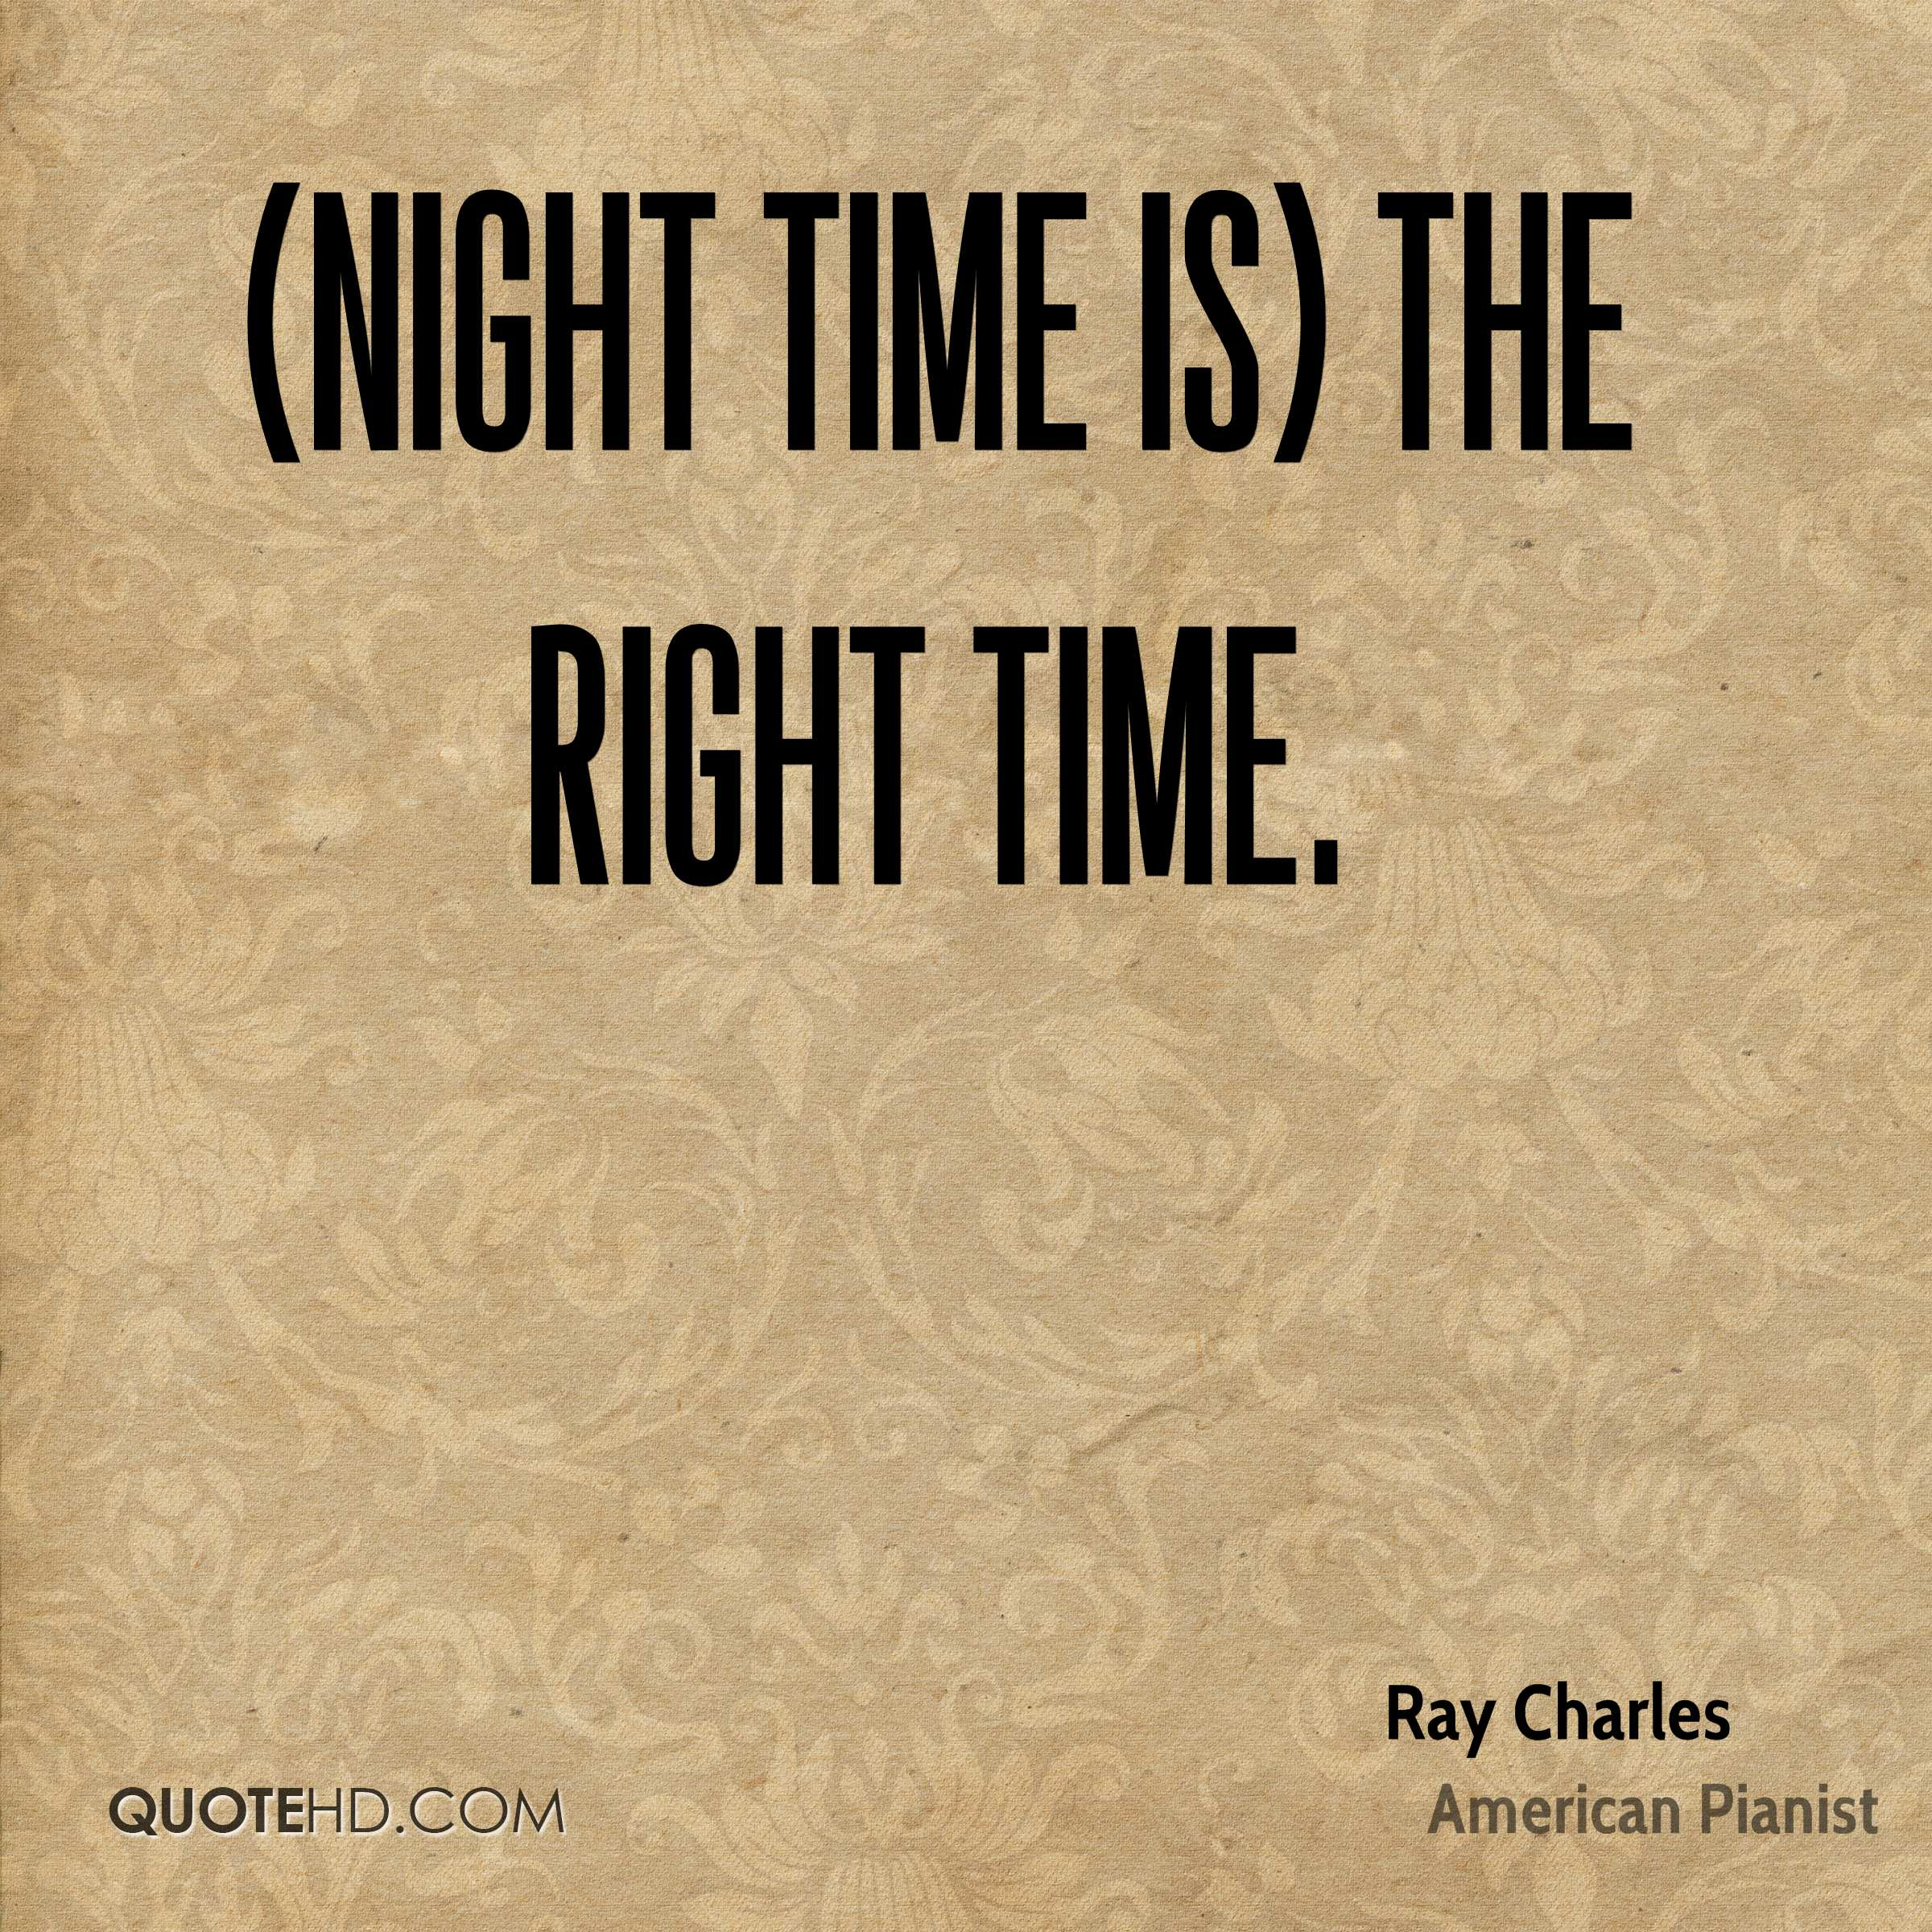 Ray Charles Quotes | QuoteHD